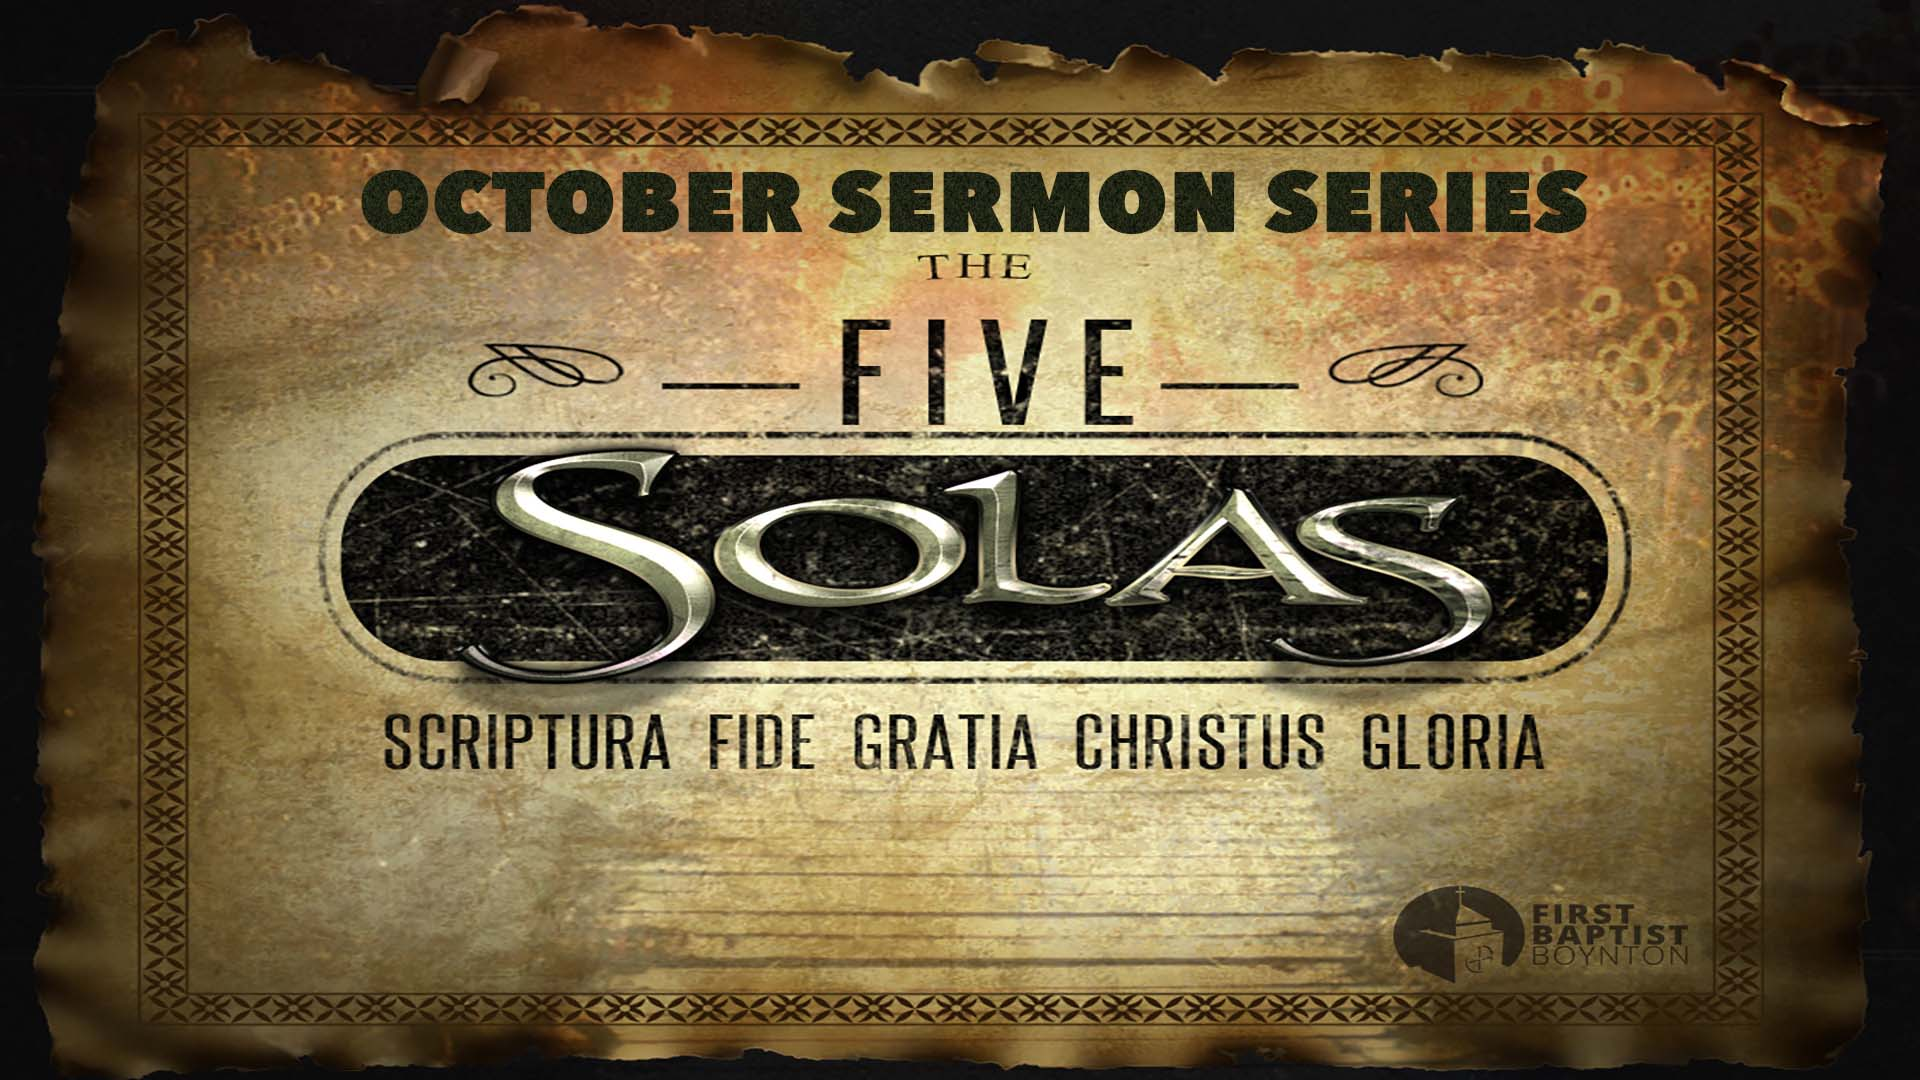 image for sola scriptura